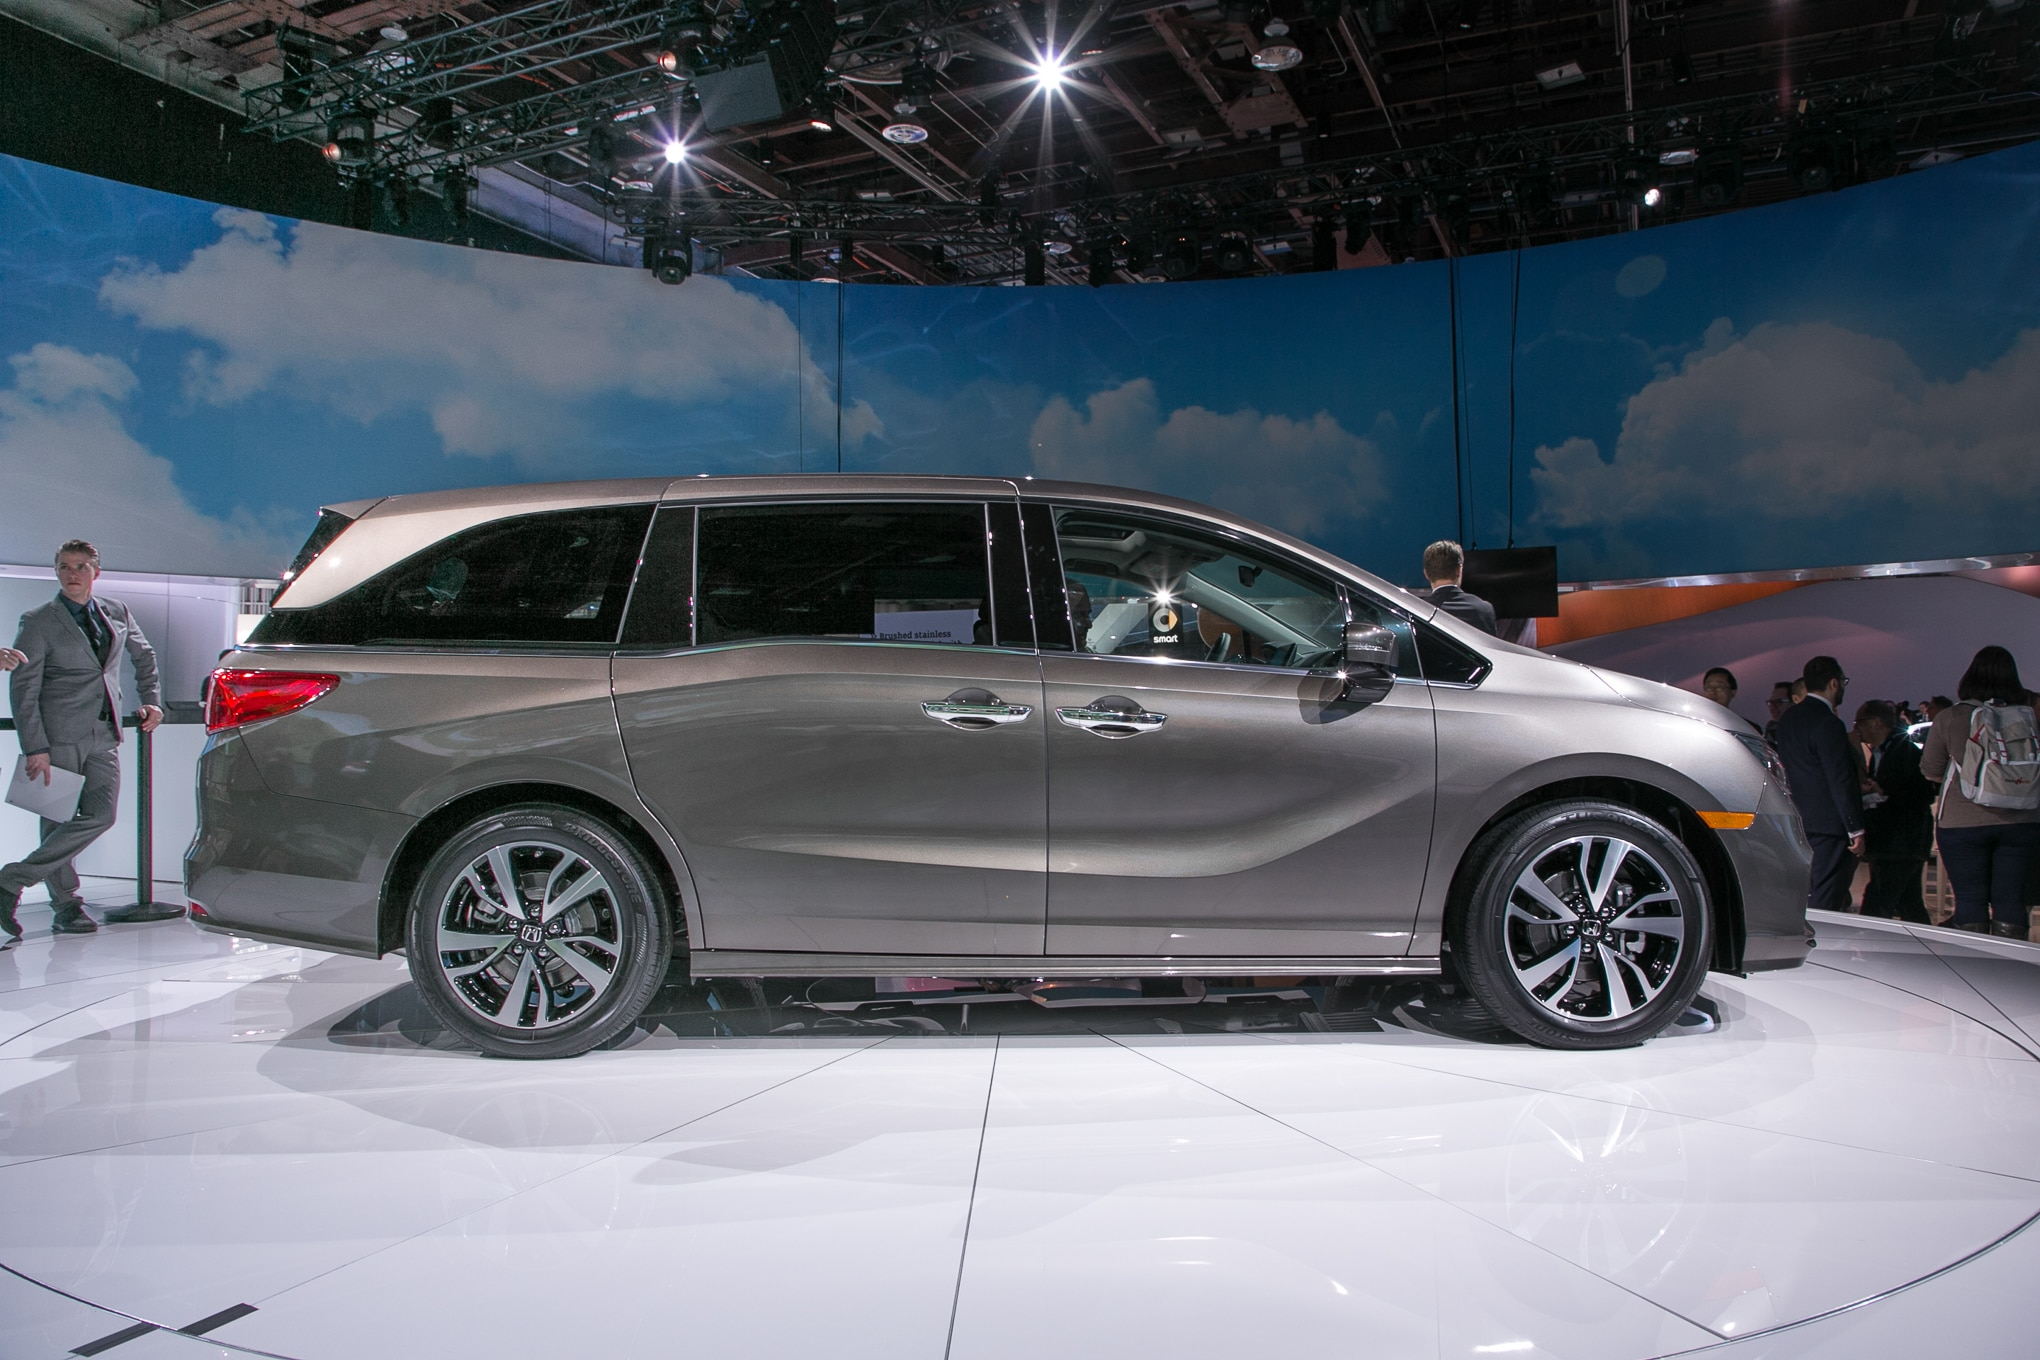 Acura Mdx 2017 >> First 2018 Honda Odyssey Minivan Rolls Off the Assembly Line | Automobile Magazine